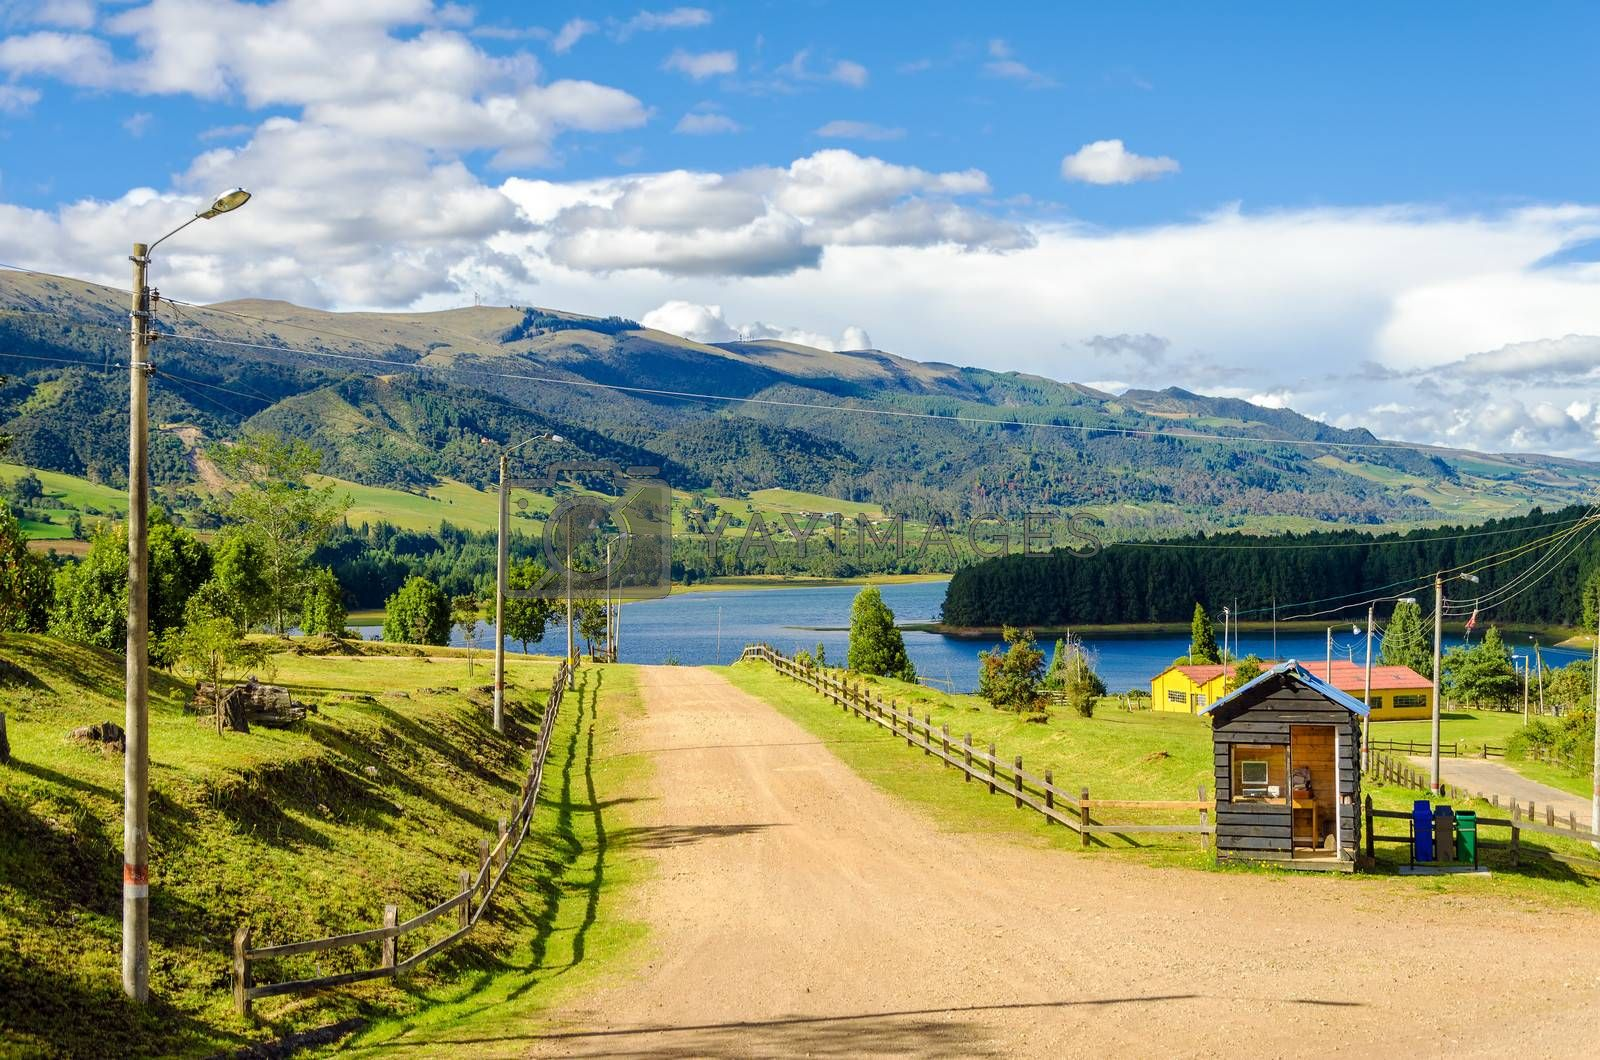 Royalty free image of Country Road and Lake by jkraft5